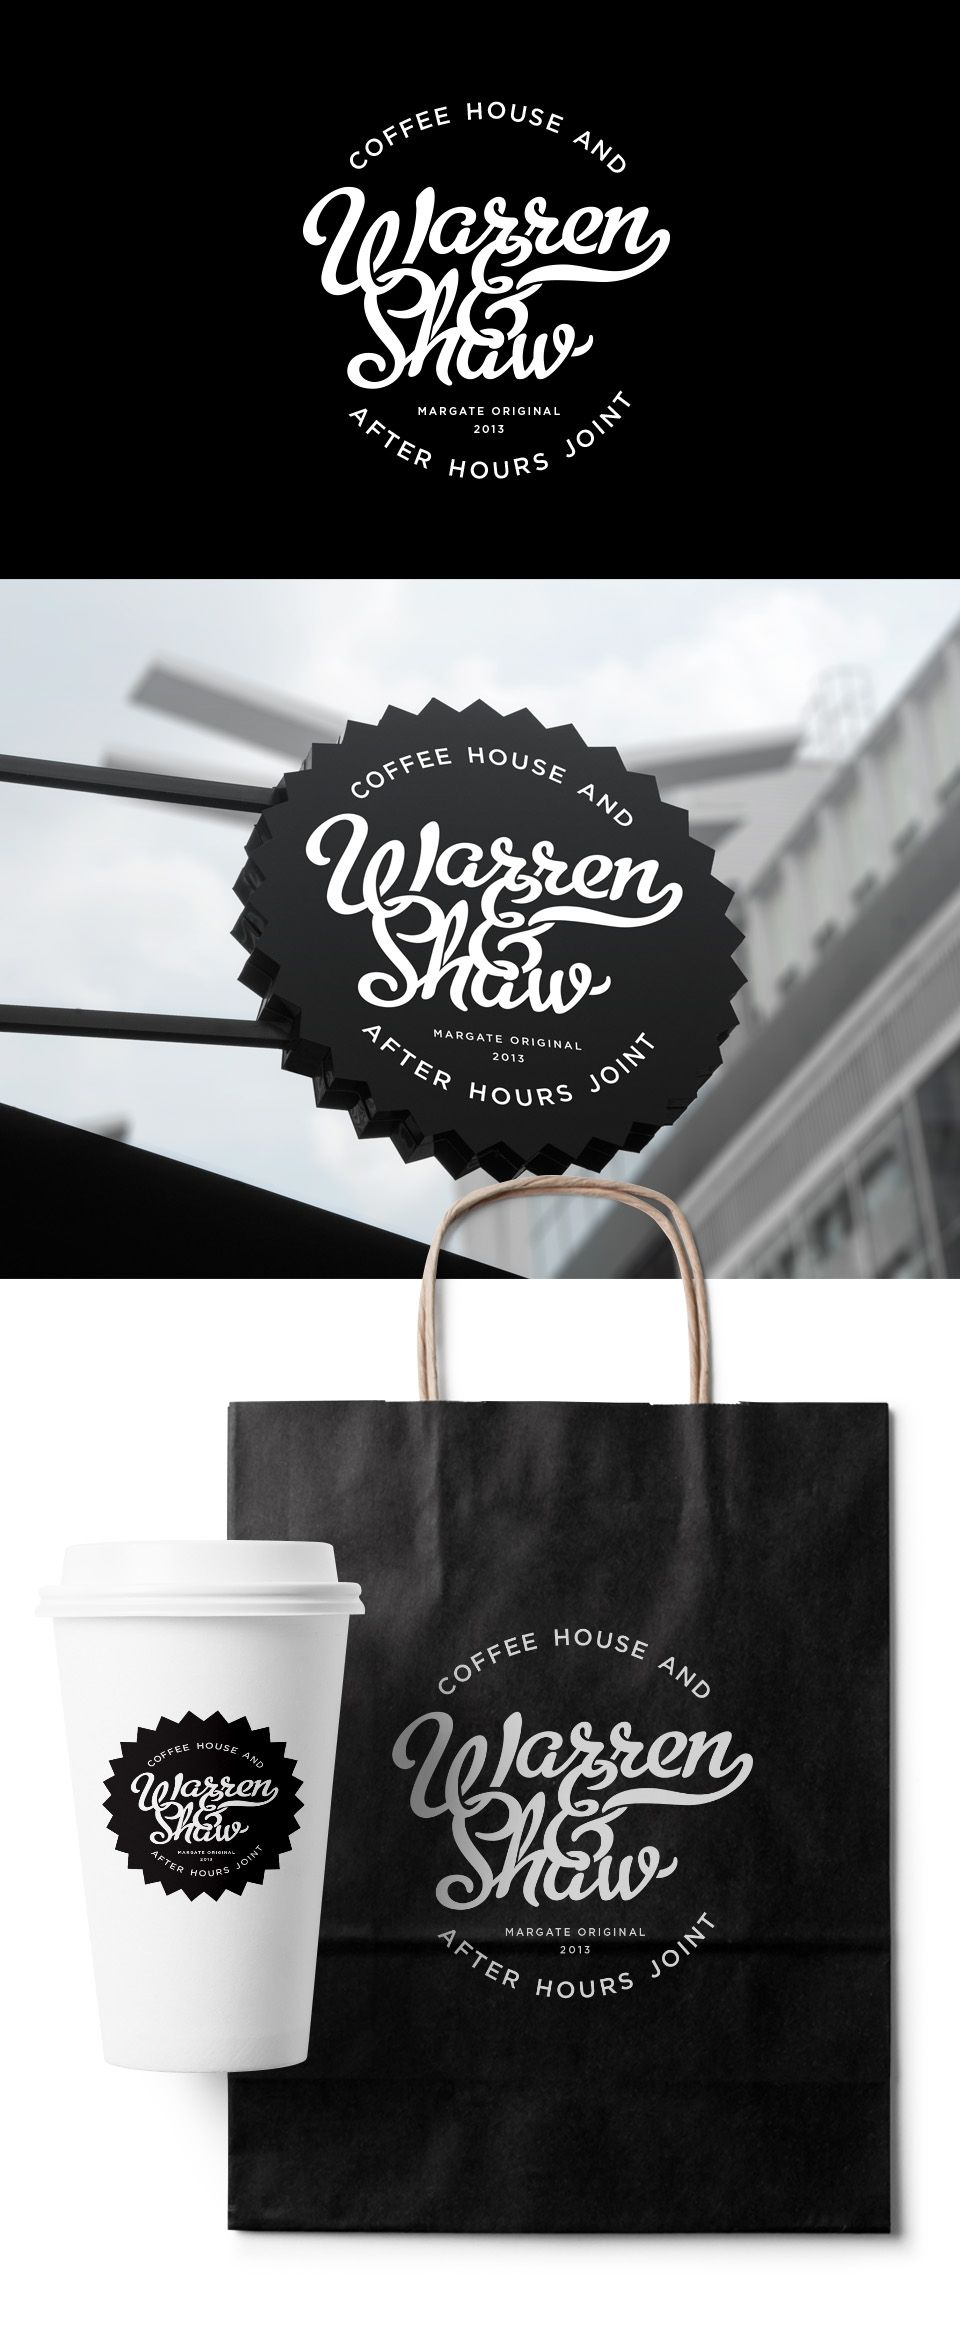 Design 6 by nenadd Create a sophisticated logo for a